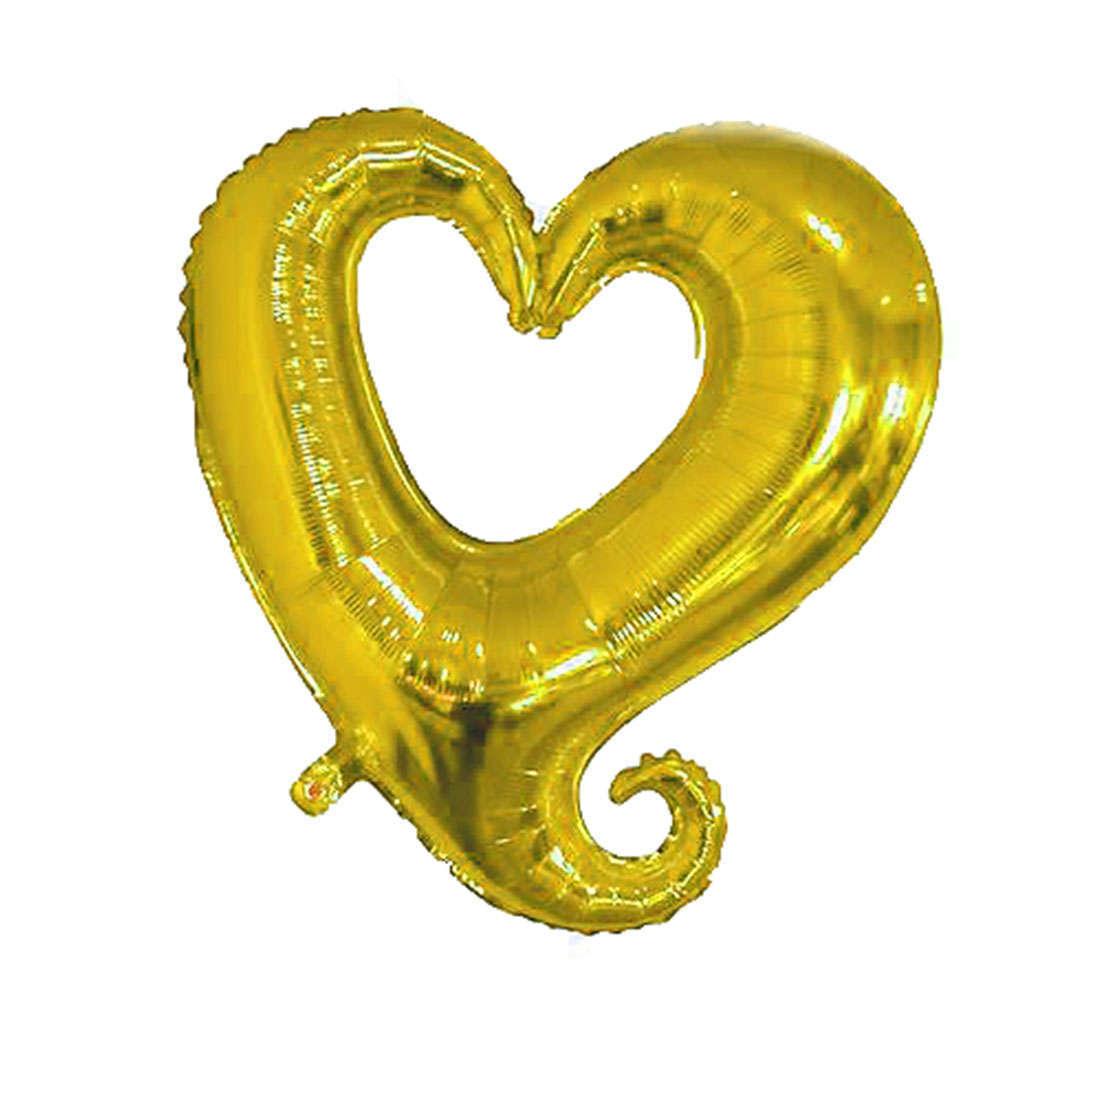 Foil Heart Design Inflation Balloon Wedding Party Celebration Decor Gold Tone 14.6 Inch